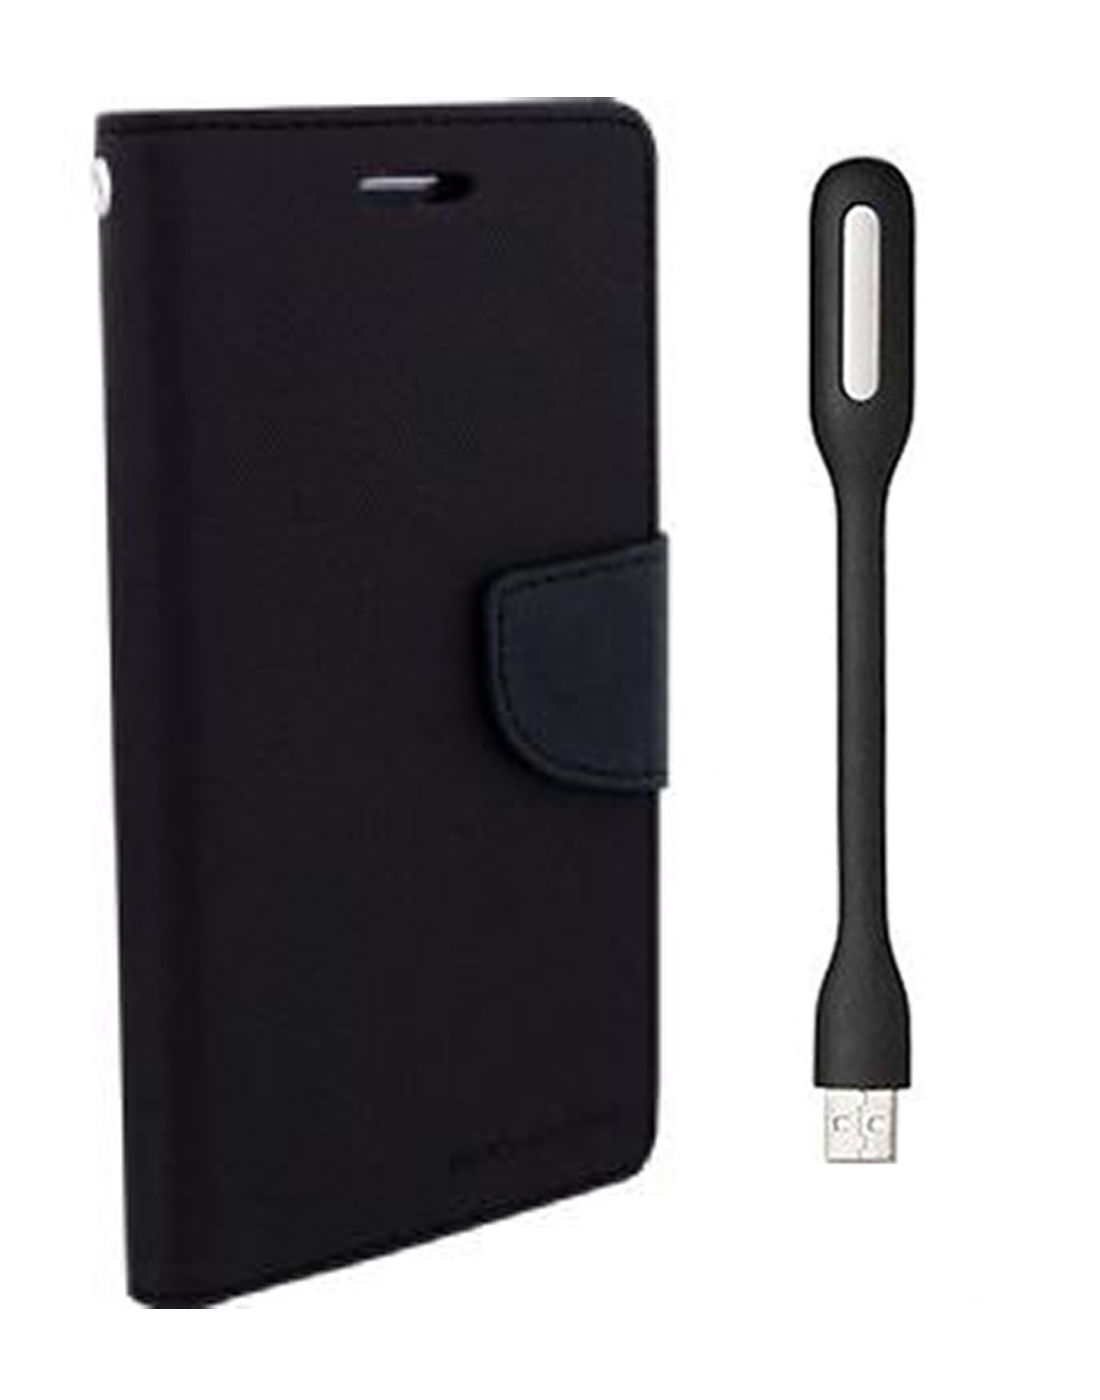 Wallet Flip Case Back Cover For Micromax A120 -(Black) + Flexible Mini LED Stick Lamp Light By Style Crome